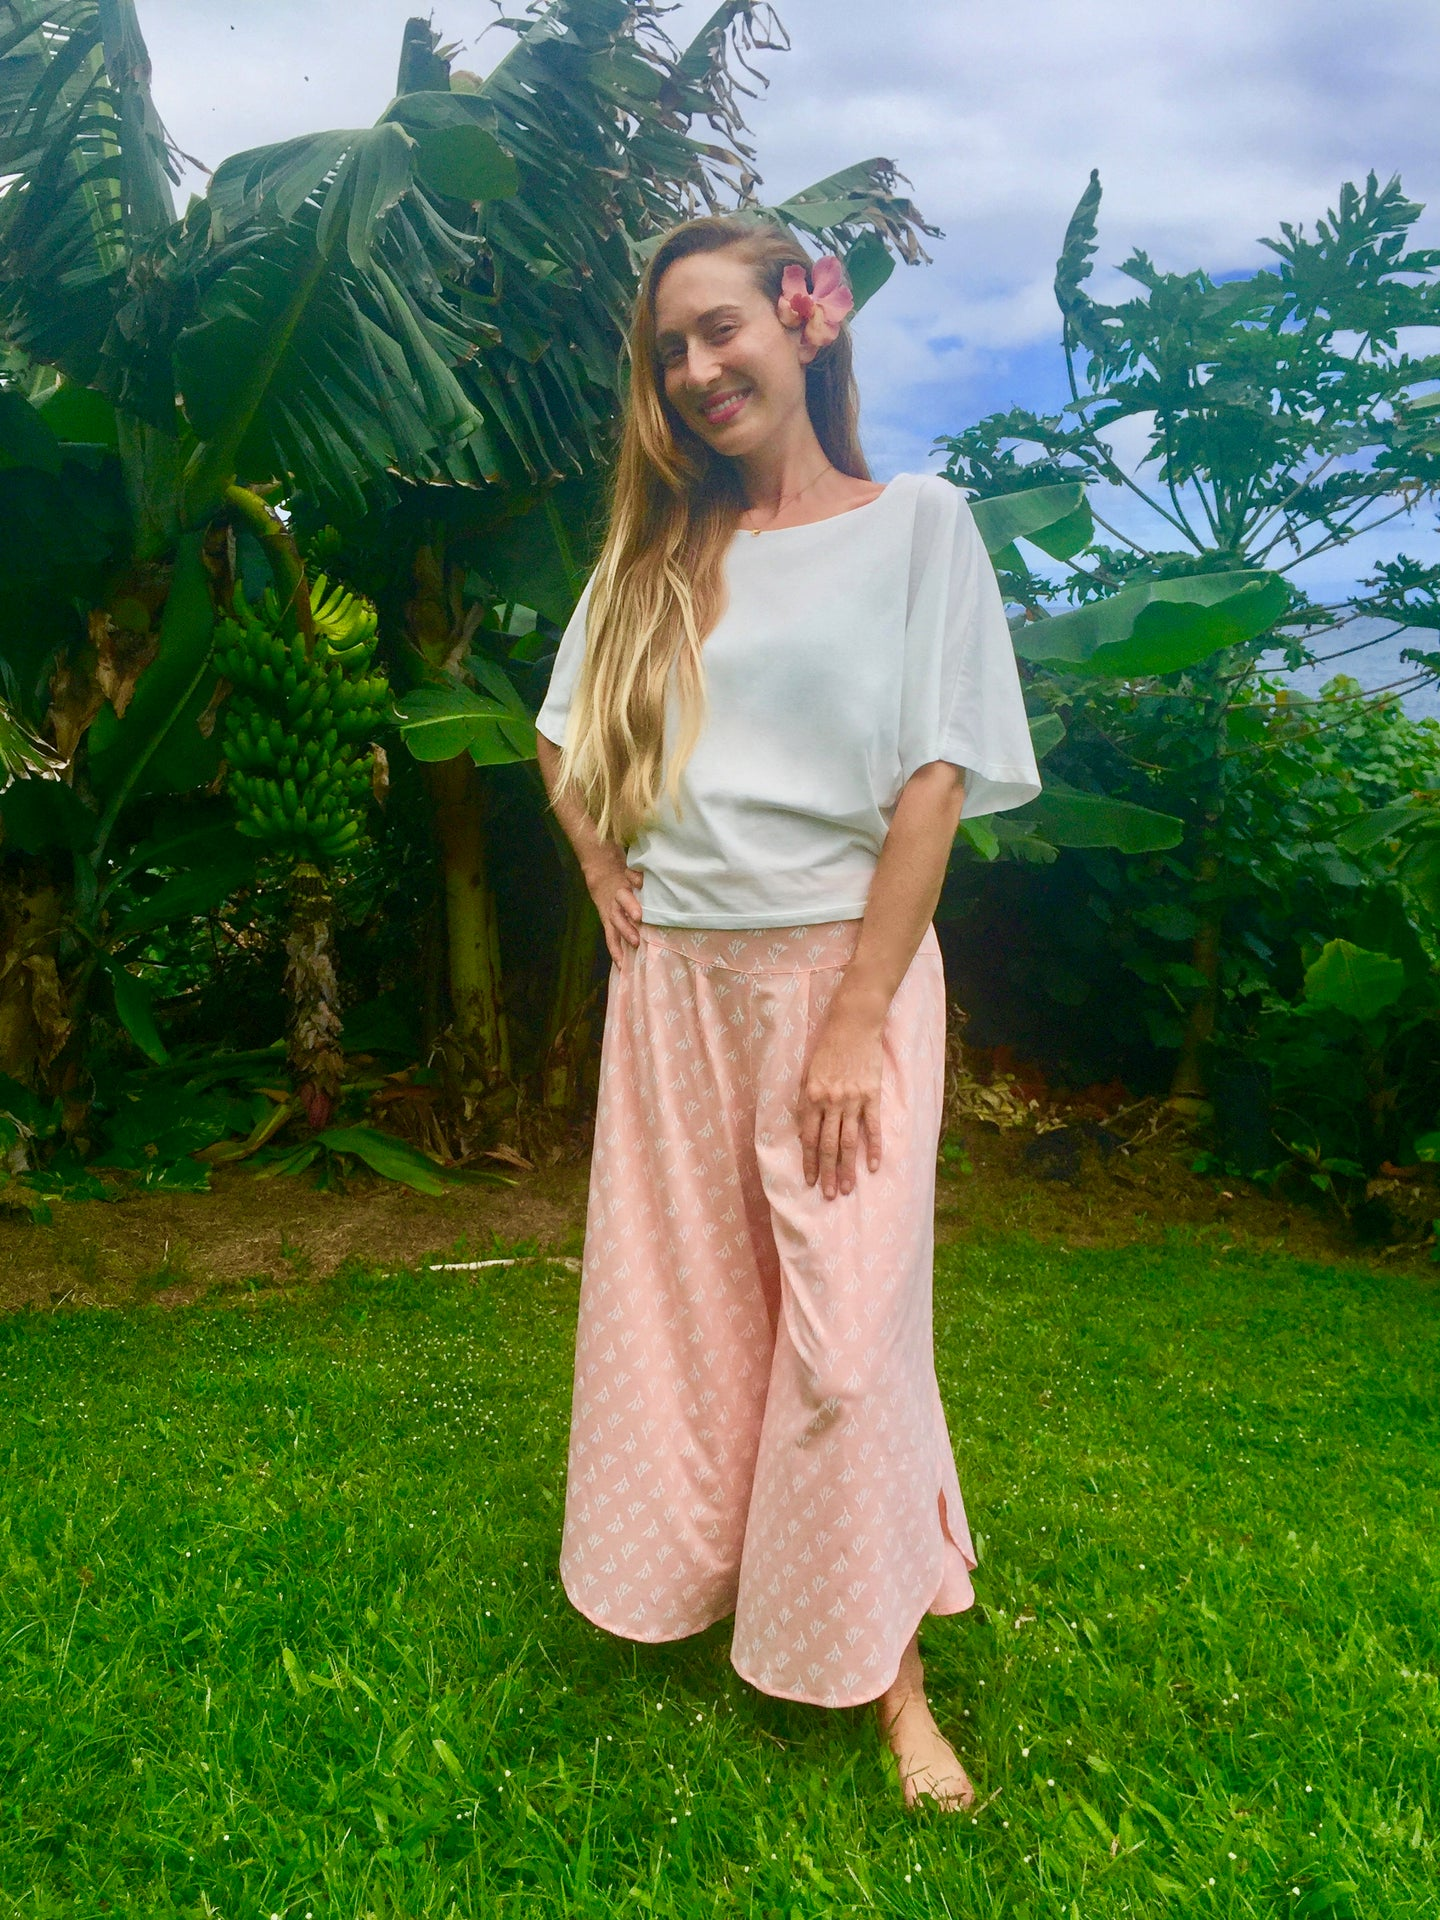 Organic cotton pants, organic cotton, sustainable cotton, sustainable clothing, moa cullote pants, ti and coco maui, hawaii, women's pants, women's organic cotton, coral organic cotton, hawaii, sustainable clothing, eco-conscious clothing